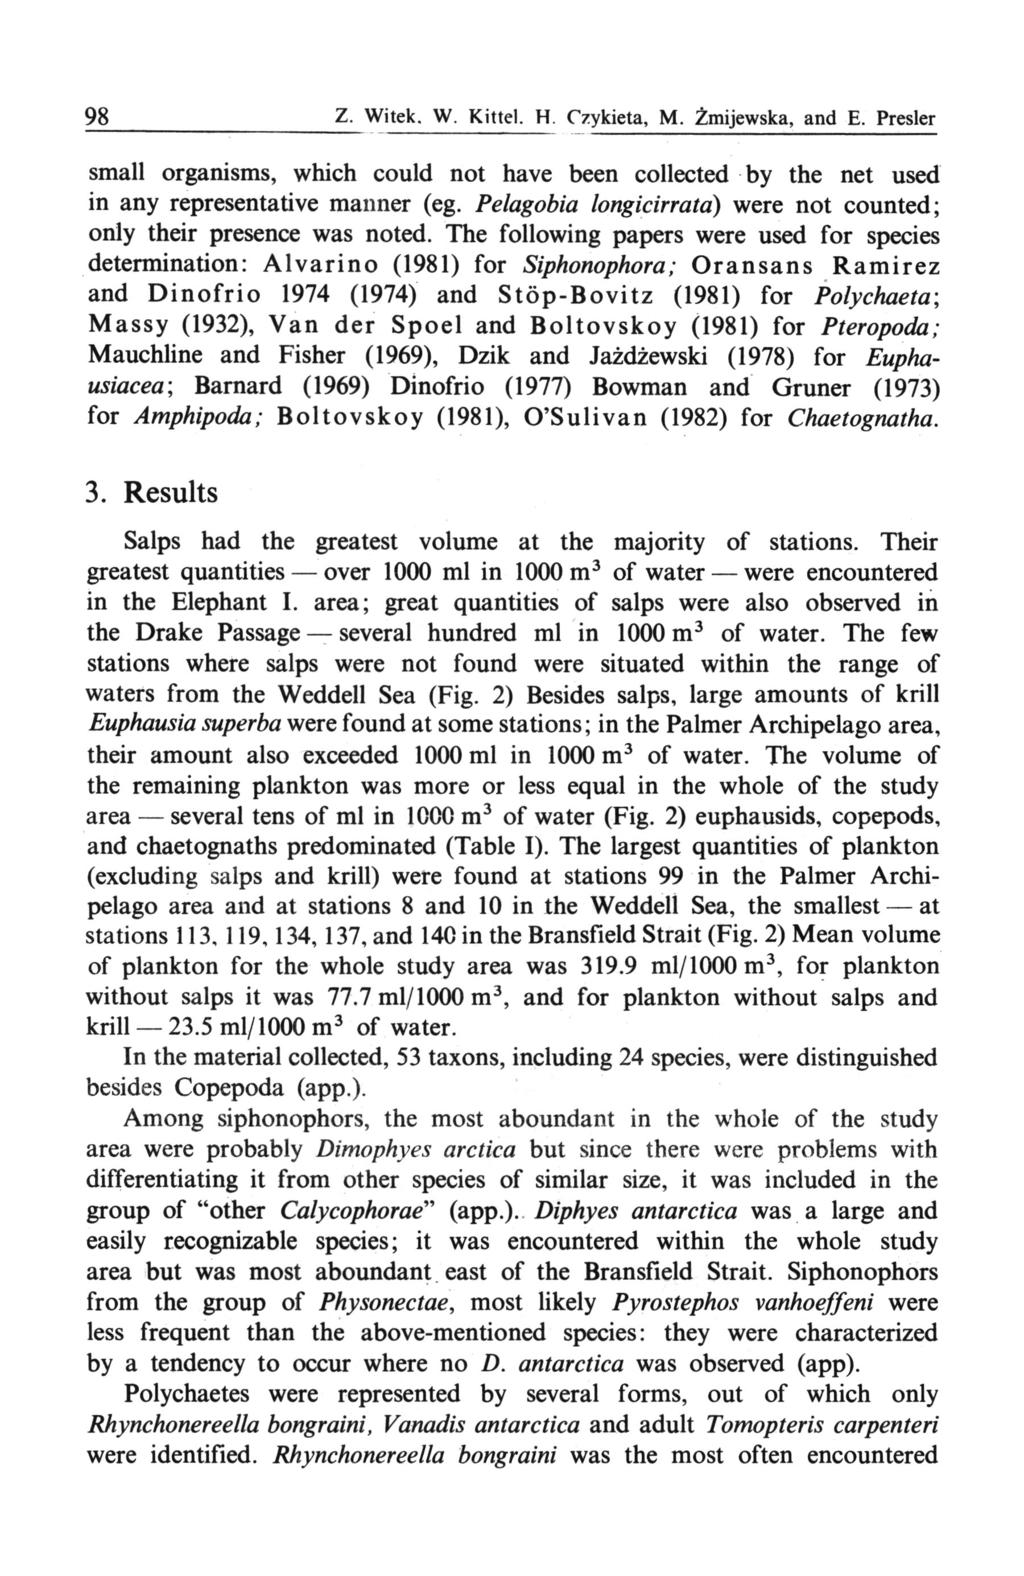 98 Z. Witek. W. Kittel. H. Czykieta, M. Żmijewska, and E. Presler small organisms, which could not have been collected by the net used in any representative manner (eg.